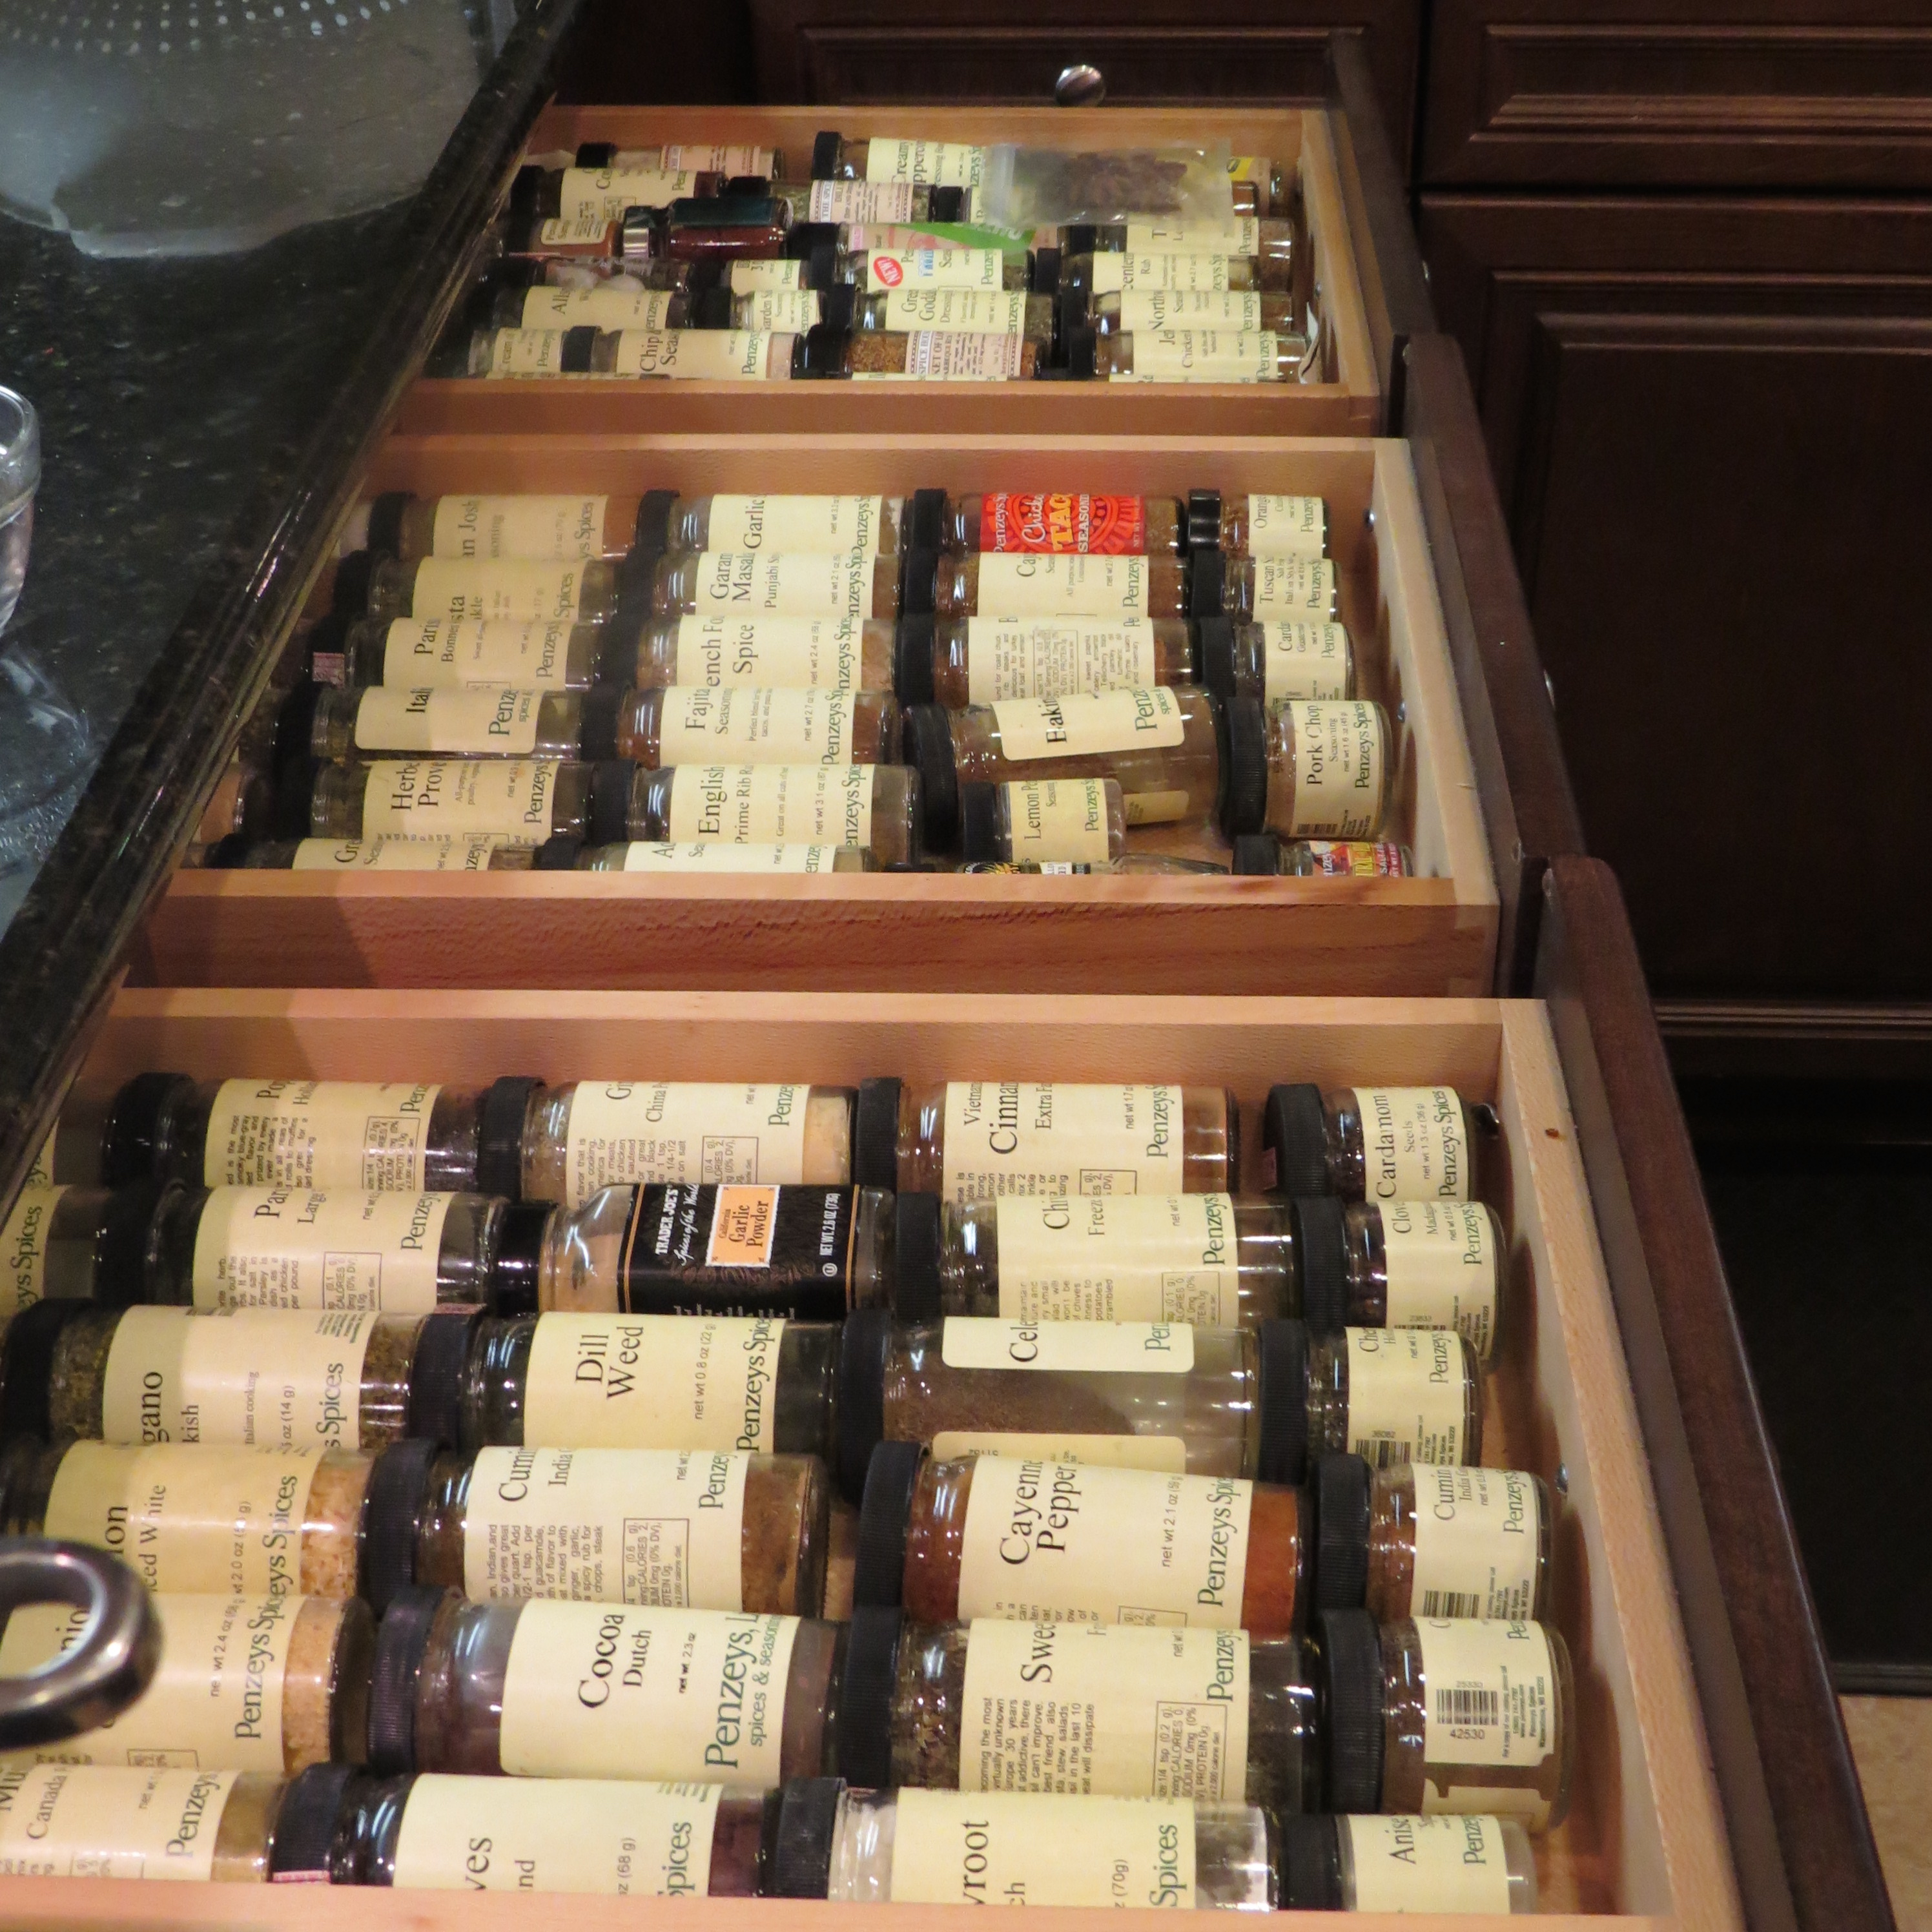 Spice Envy: Susan and John's Inventory.